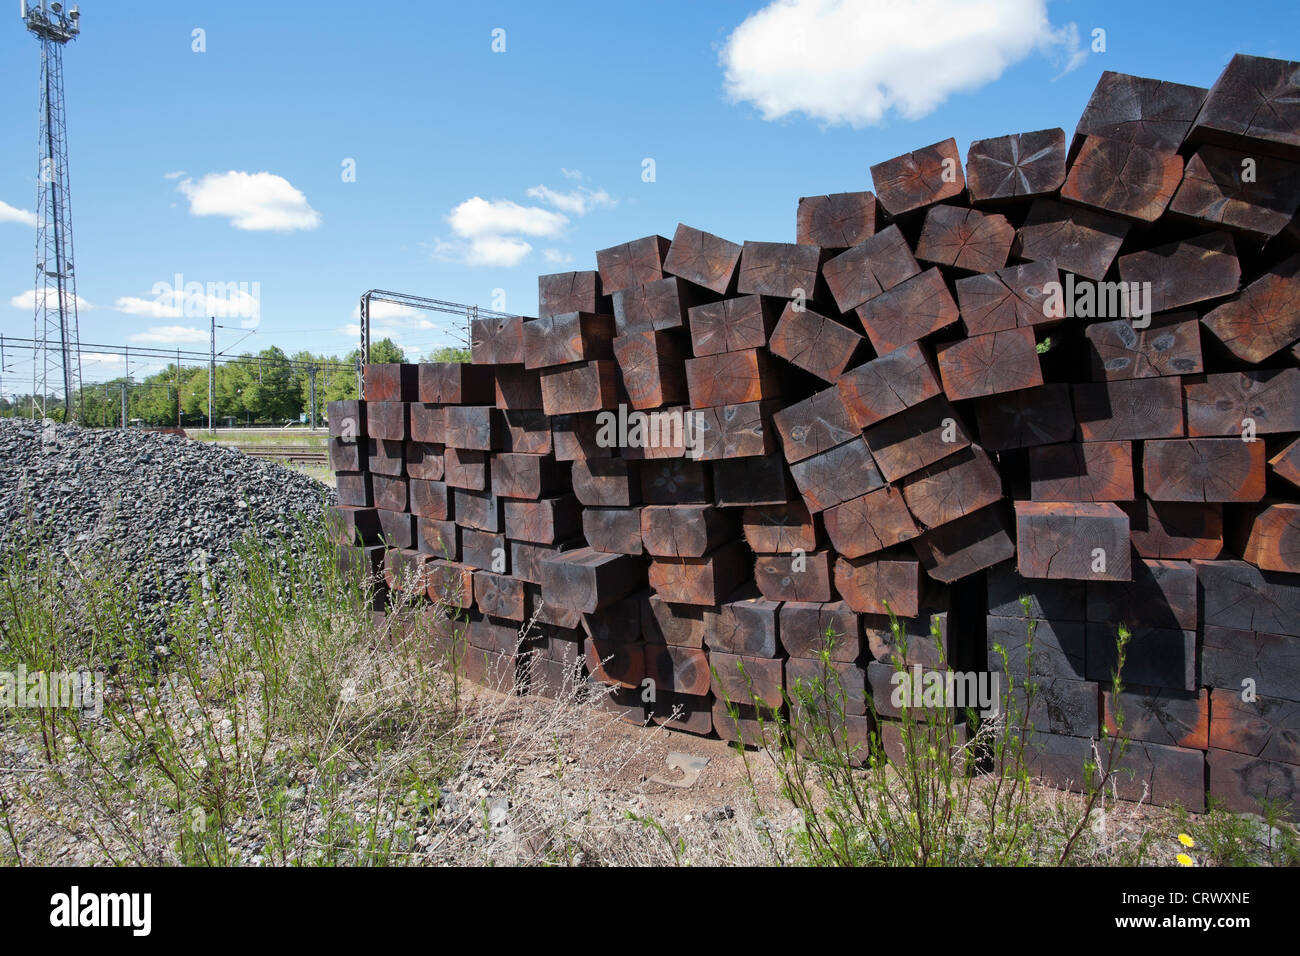 Creosote treated wooden railroad sleepers, Finland - Stock Image